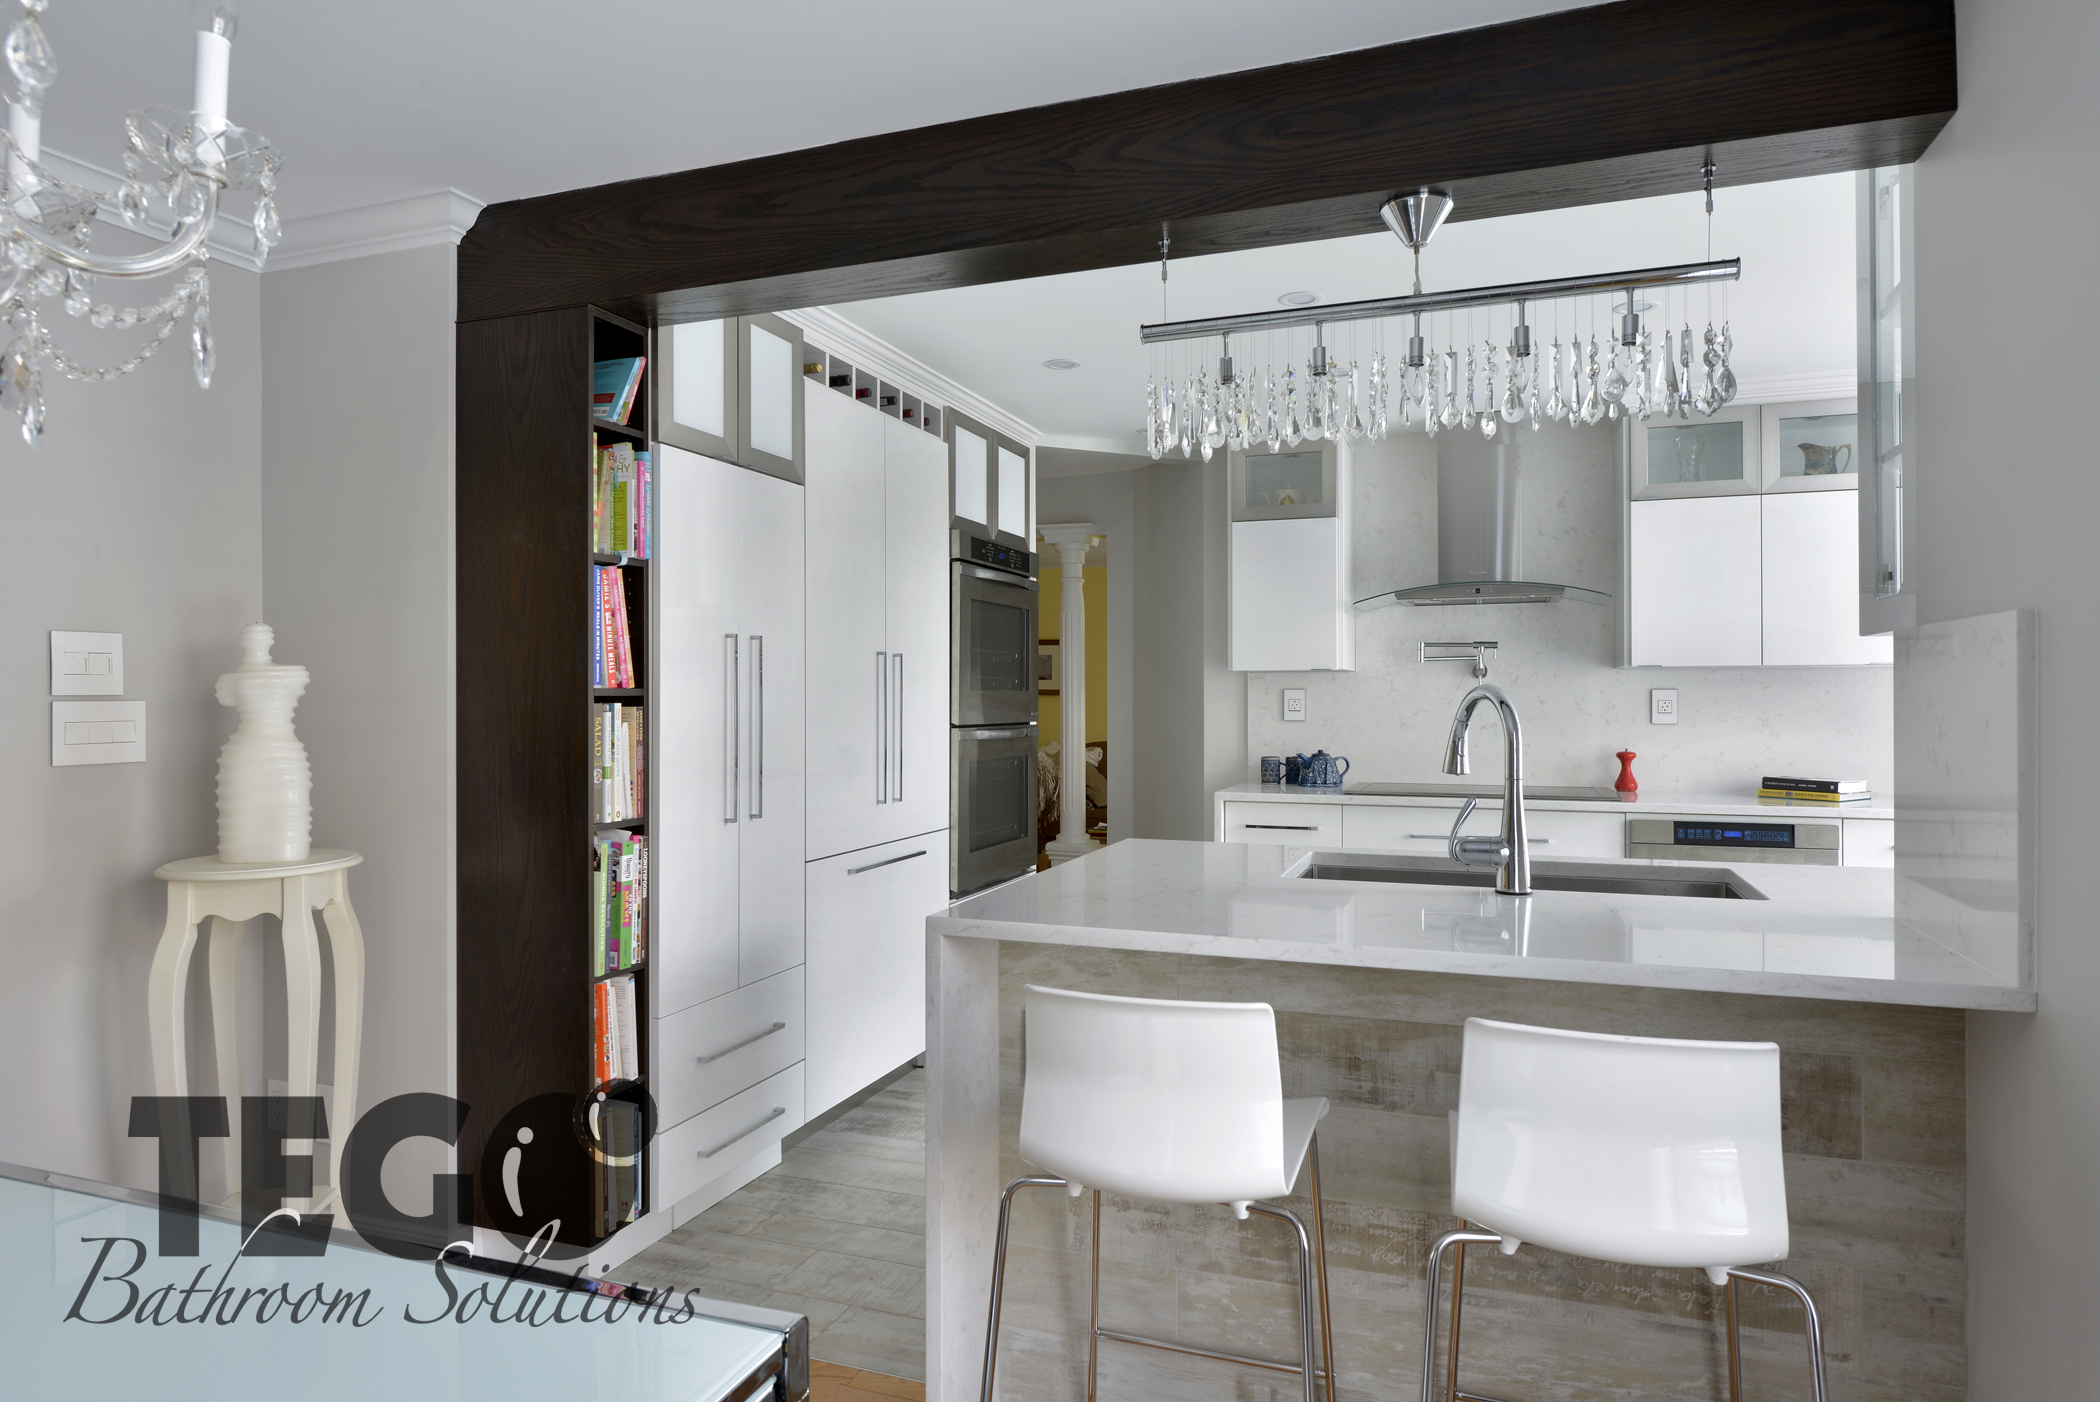 Kitchen bathroom solutions - Supporting Beam With A Matching Bookshelf Beside The Kitchen Nook